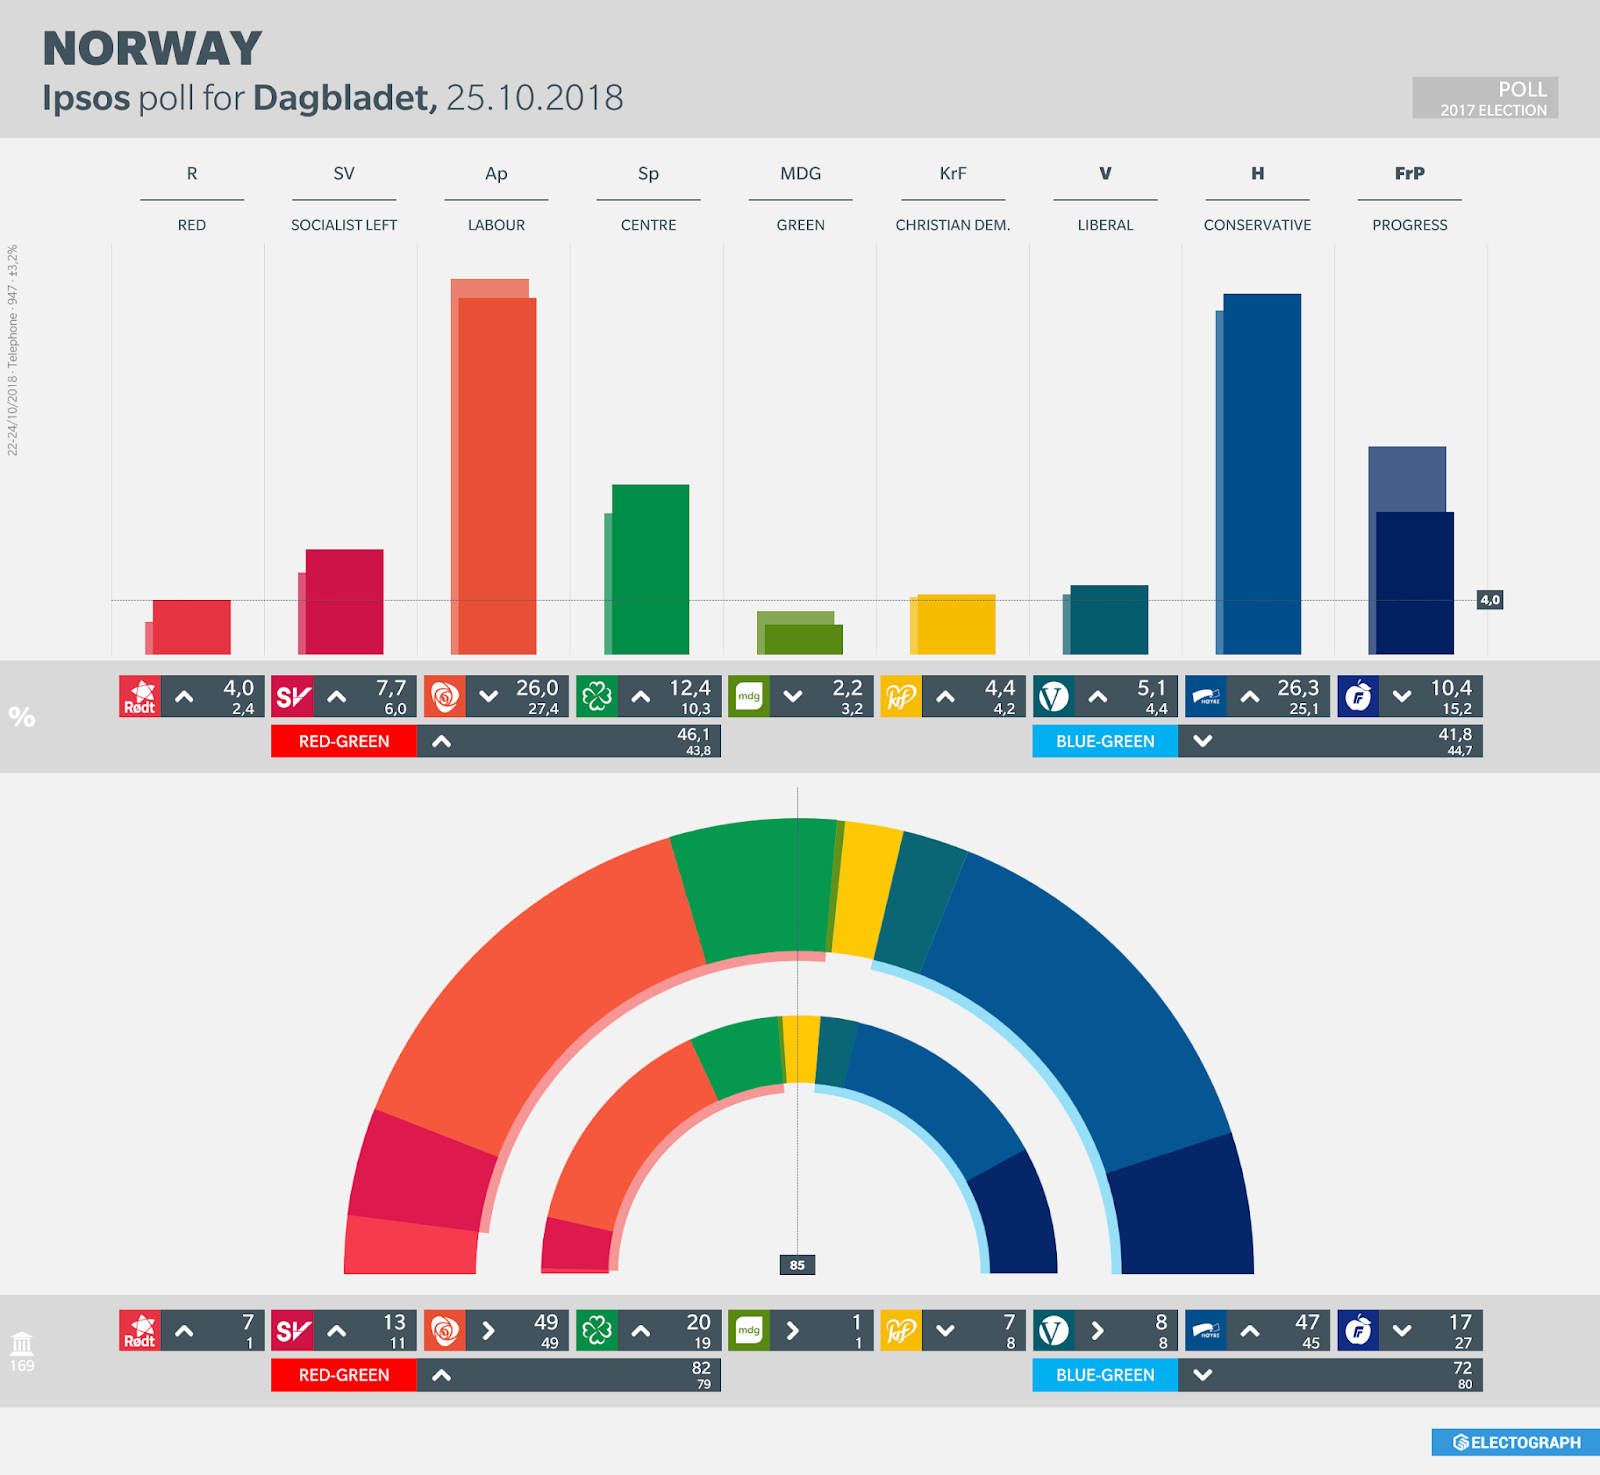 NORWAY: Ipsos poll chart for Dagbladet, October 2018